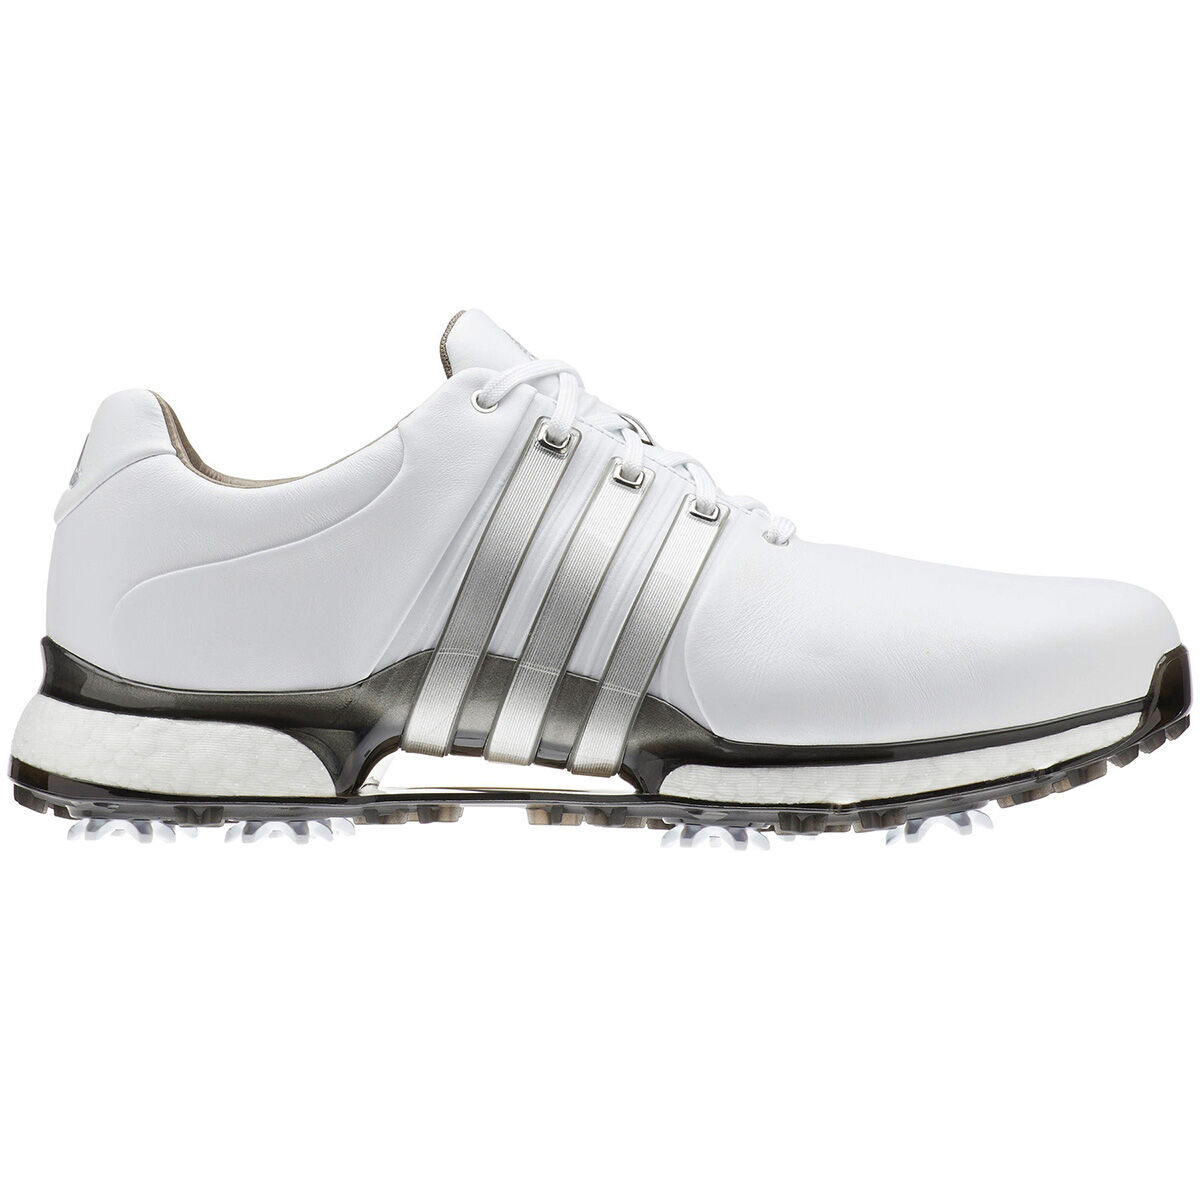 7b4c906876c9a8 adidas Golf Tour 360 XT Shoe from american golf